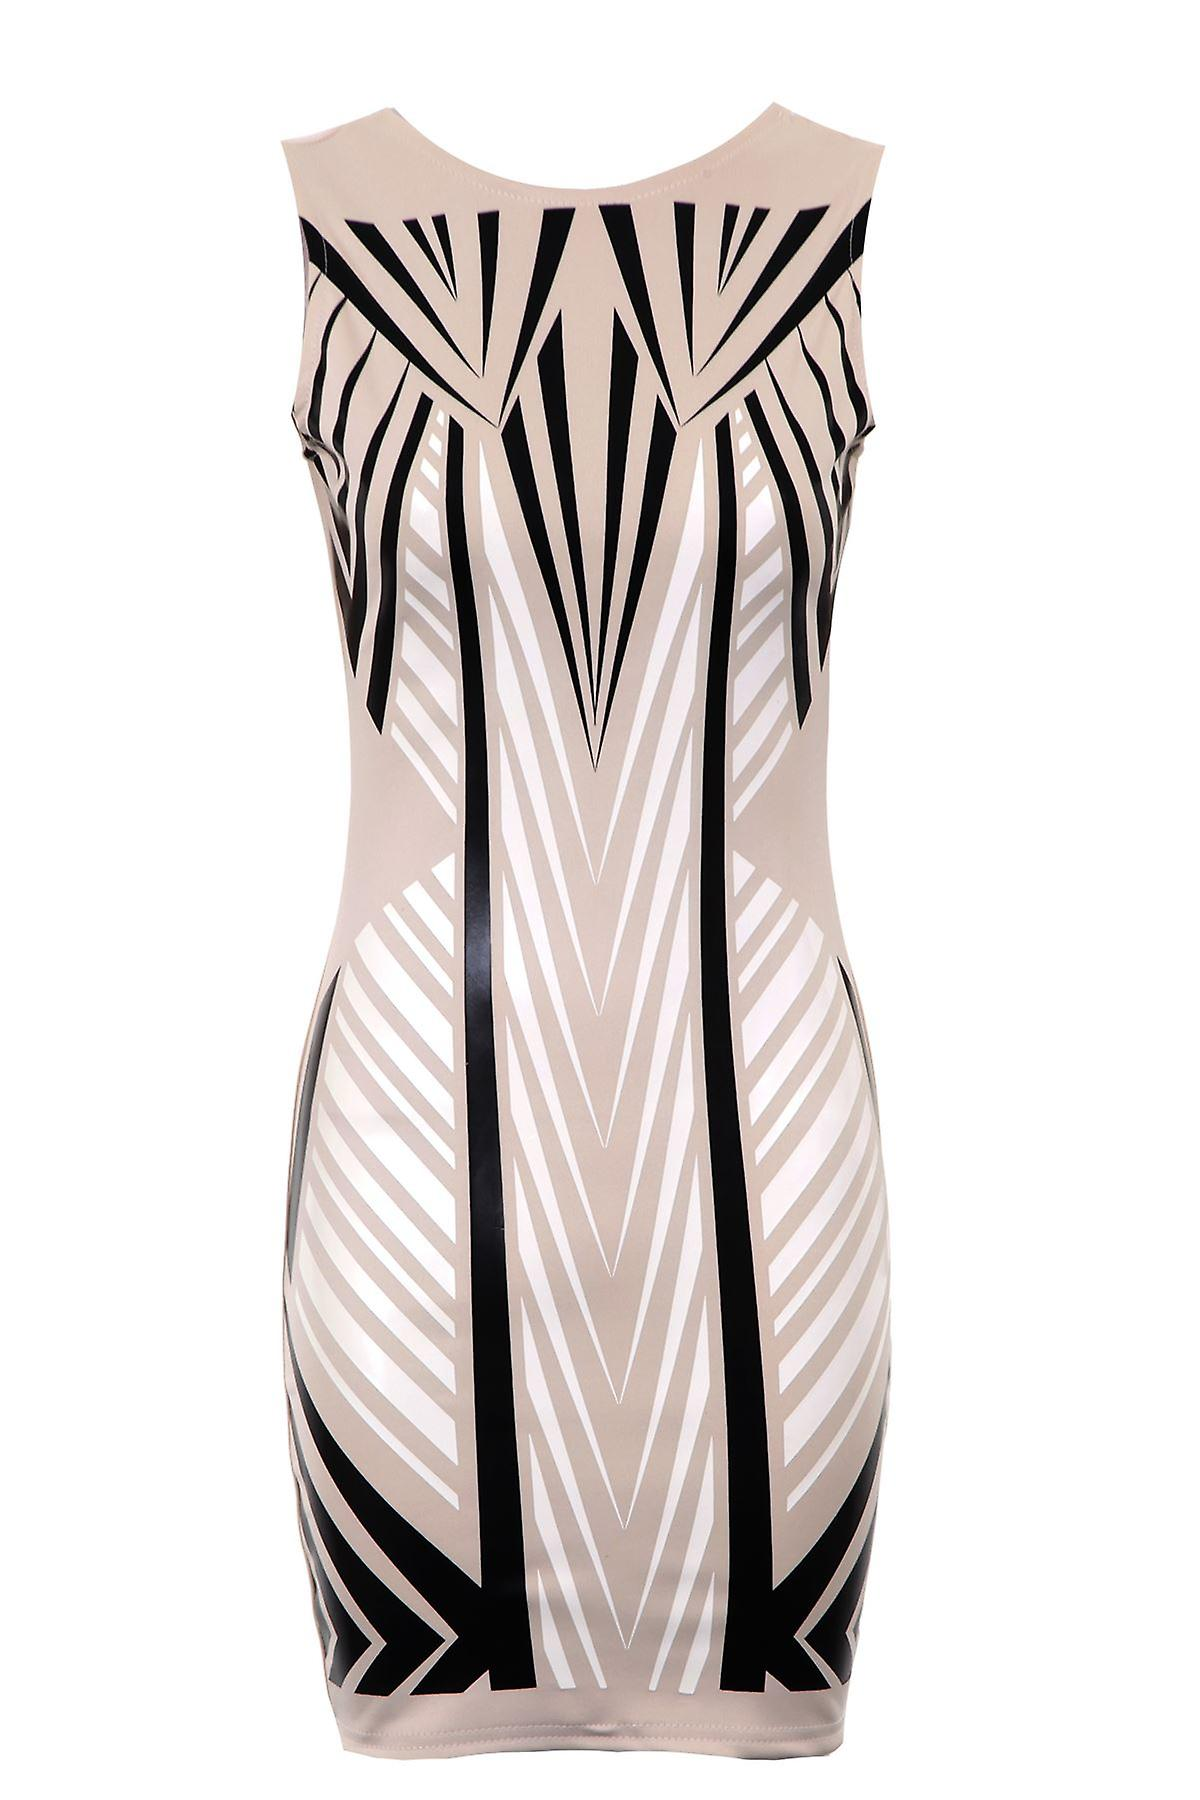 New Ladies Bodycon Sleeveless Wetlook Triangle Pattern Women's Slim Fitting Dress